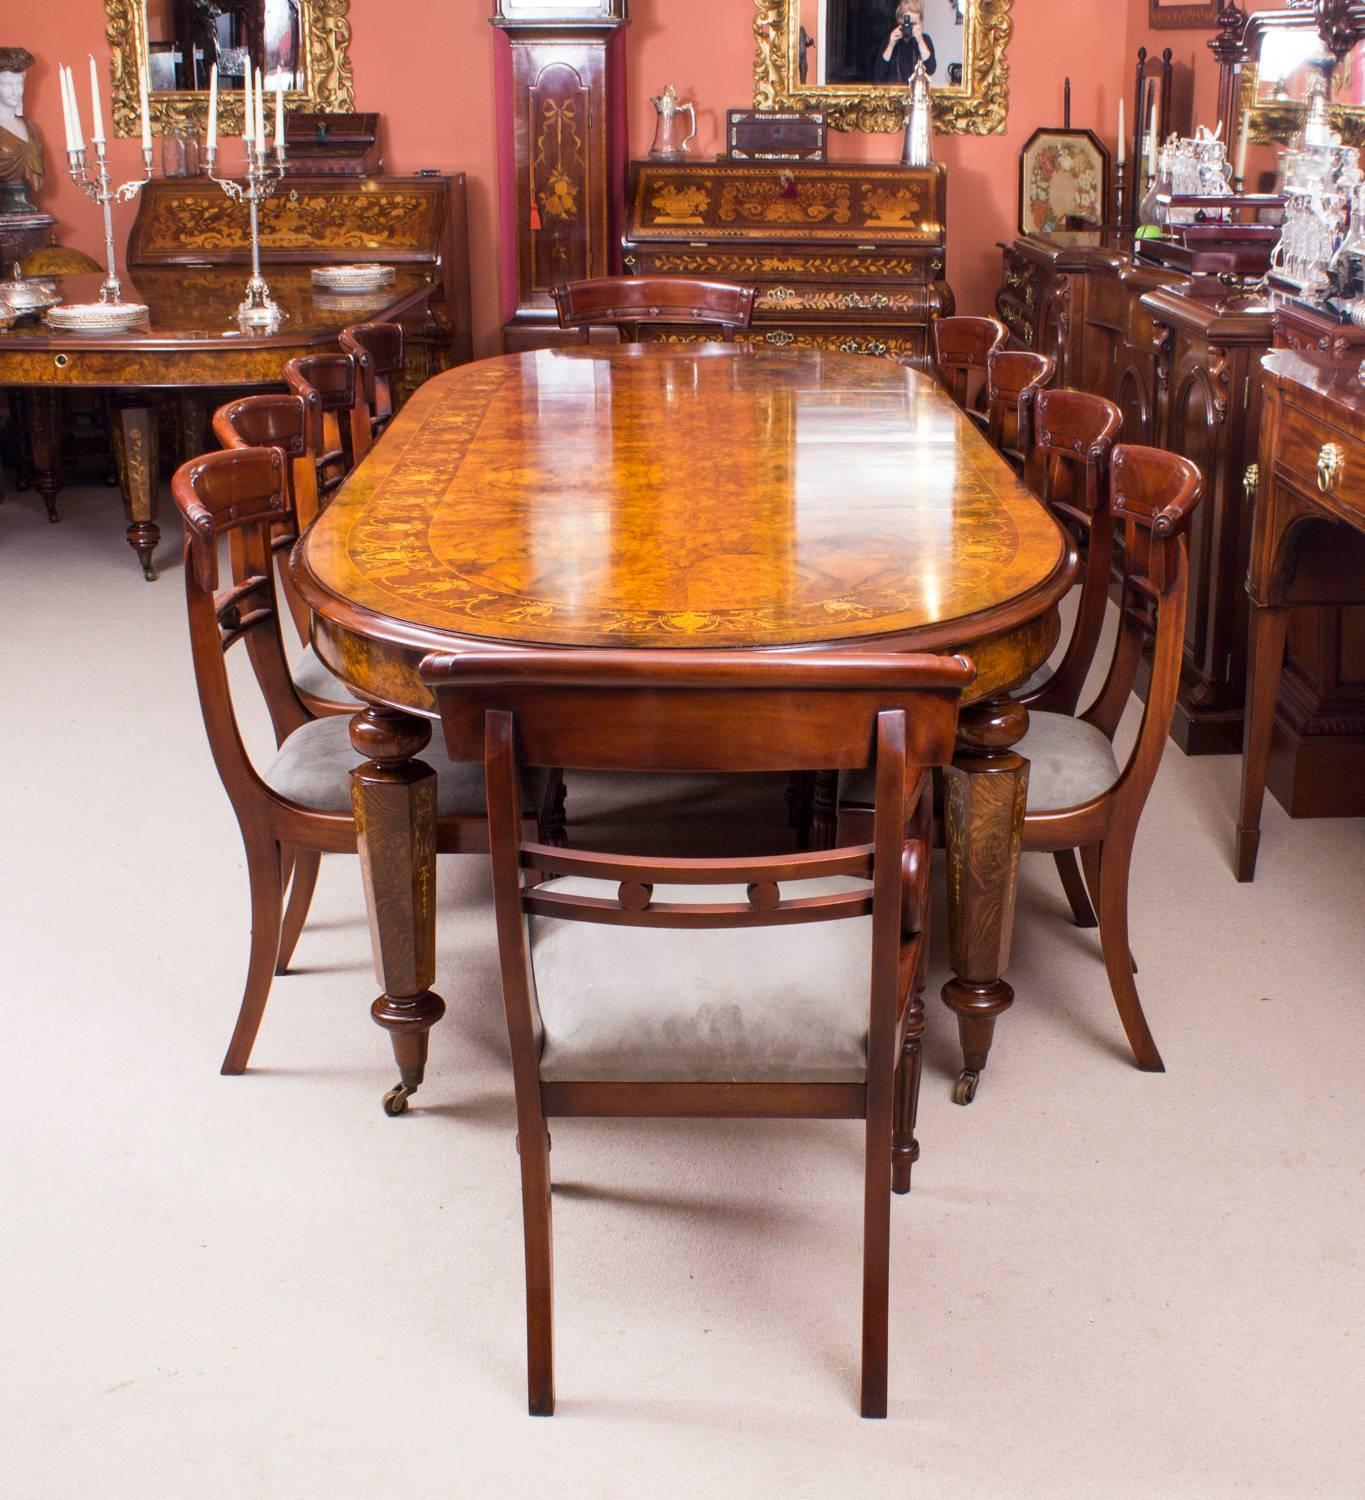 This is a fantastic bespoke handmade Victorian style marquetry dining table in burr walnut complete with & Superb Bespoke Handmade Burr Walnut Marquetry Dining Table Ten ...